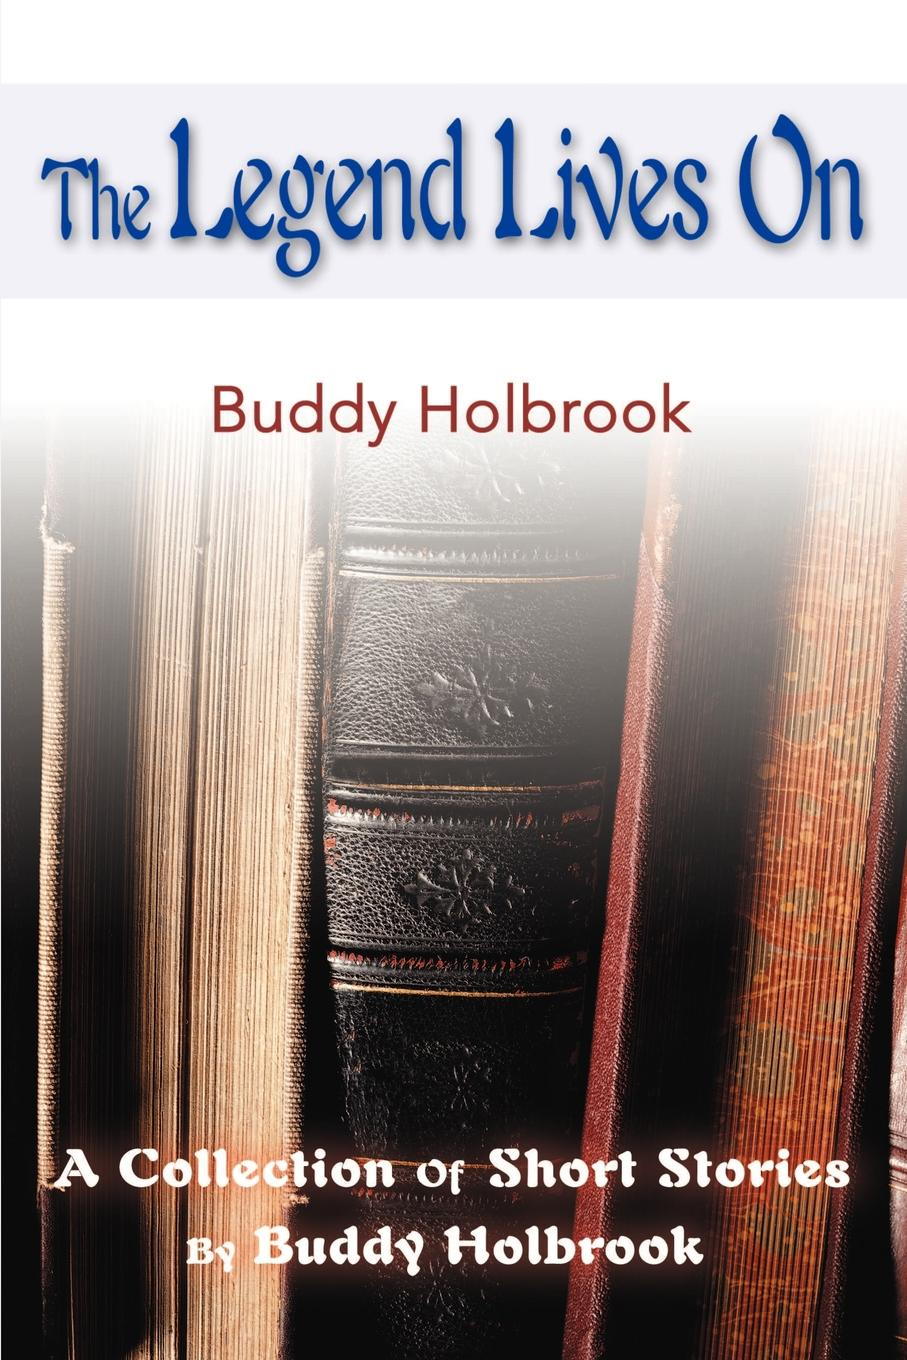 The Legend Lives on. A Collection of Short Stories. Buddy Holbrook